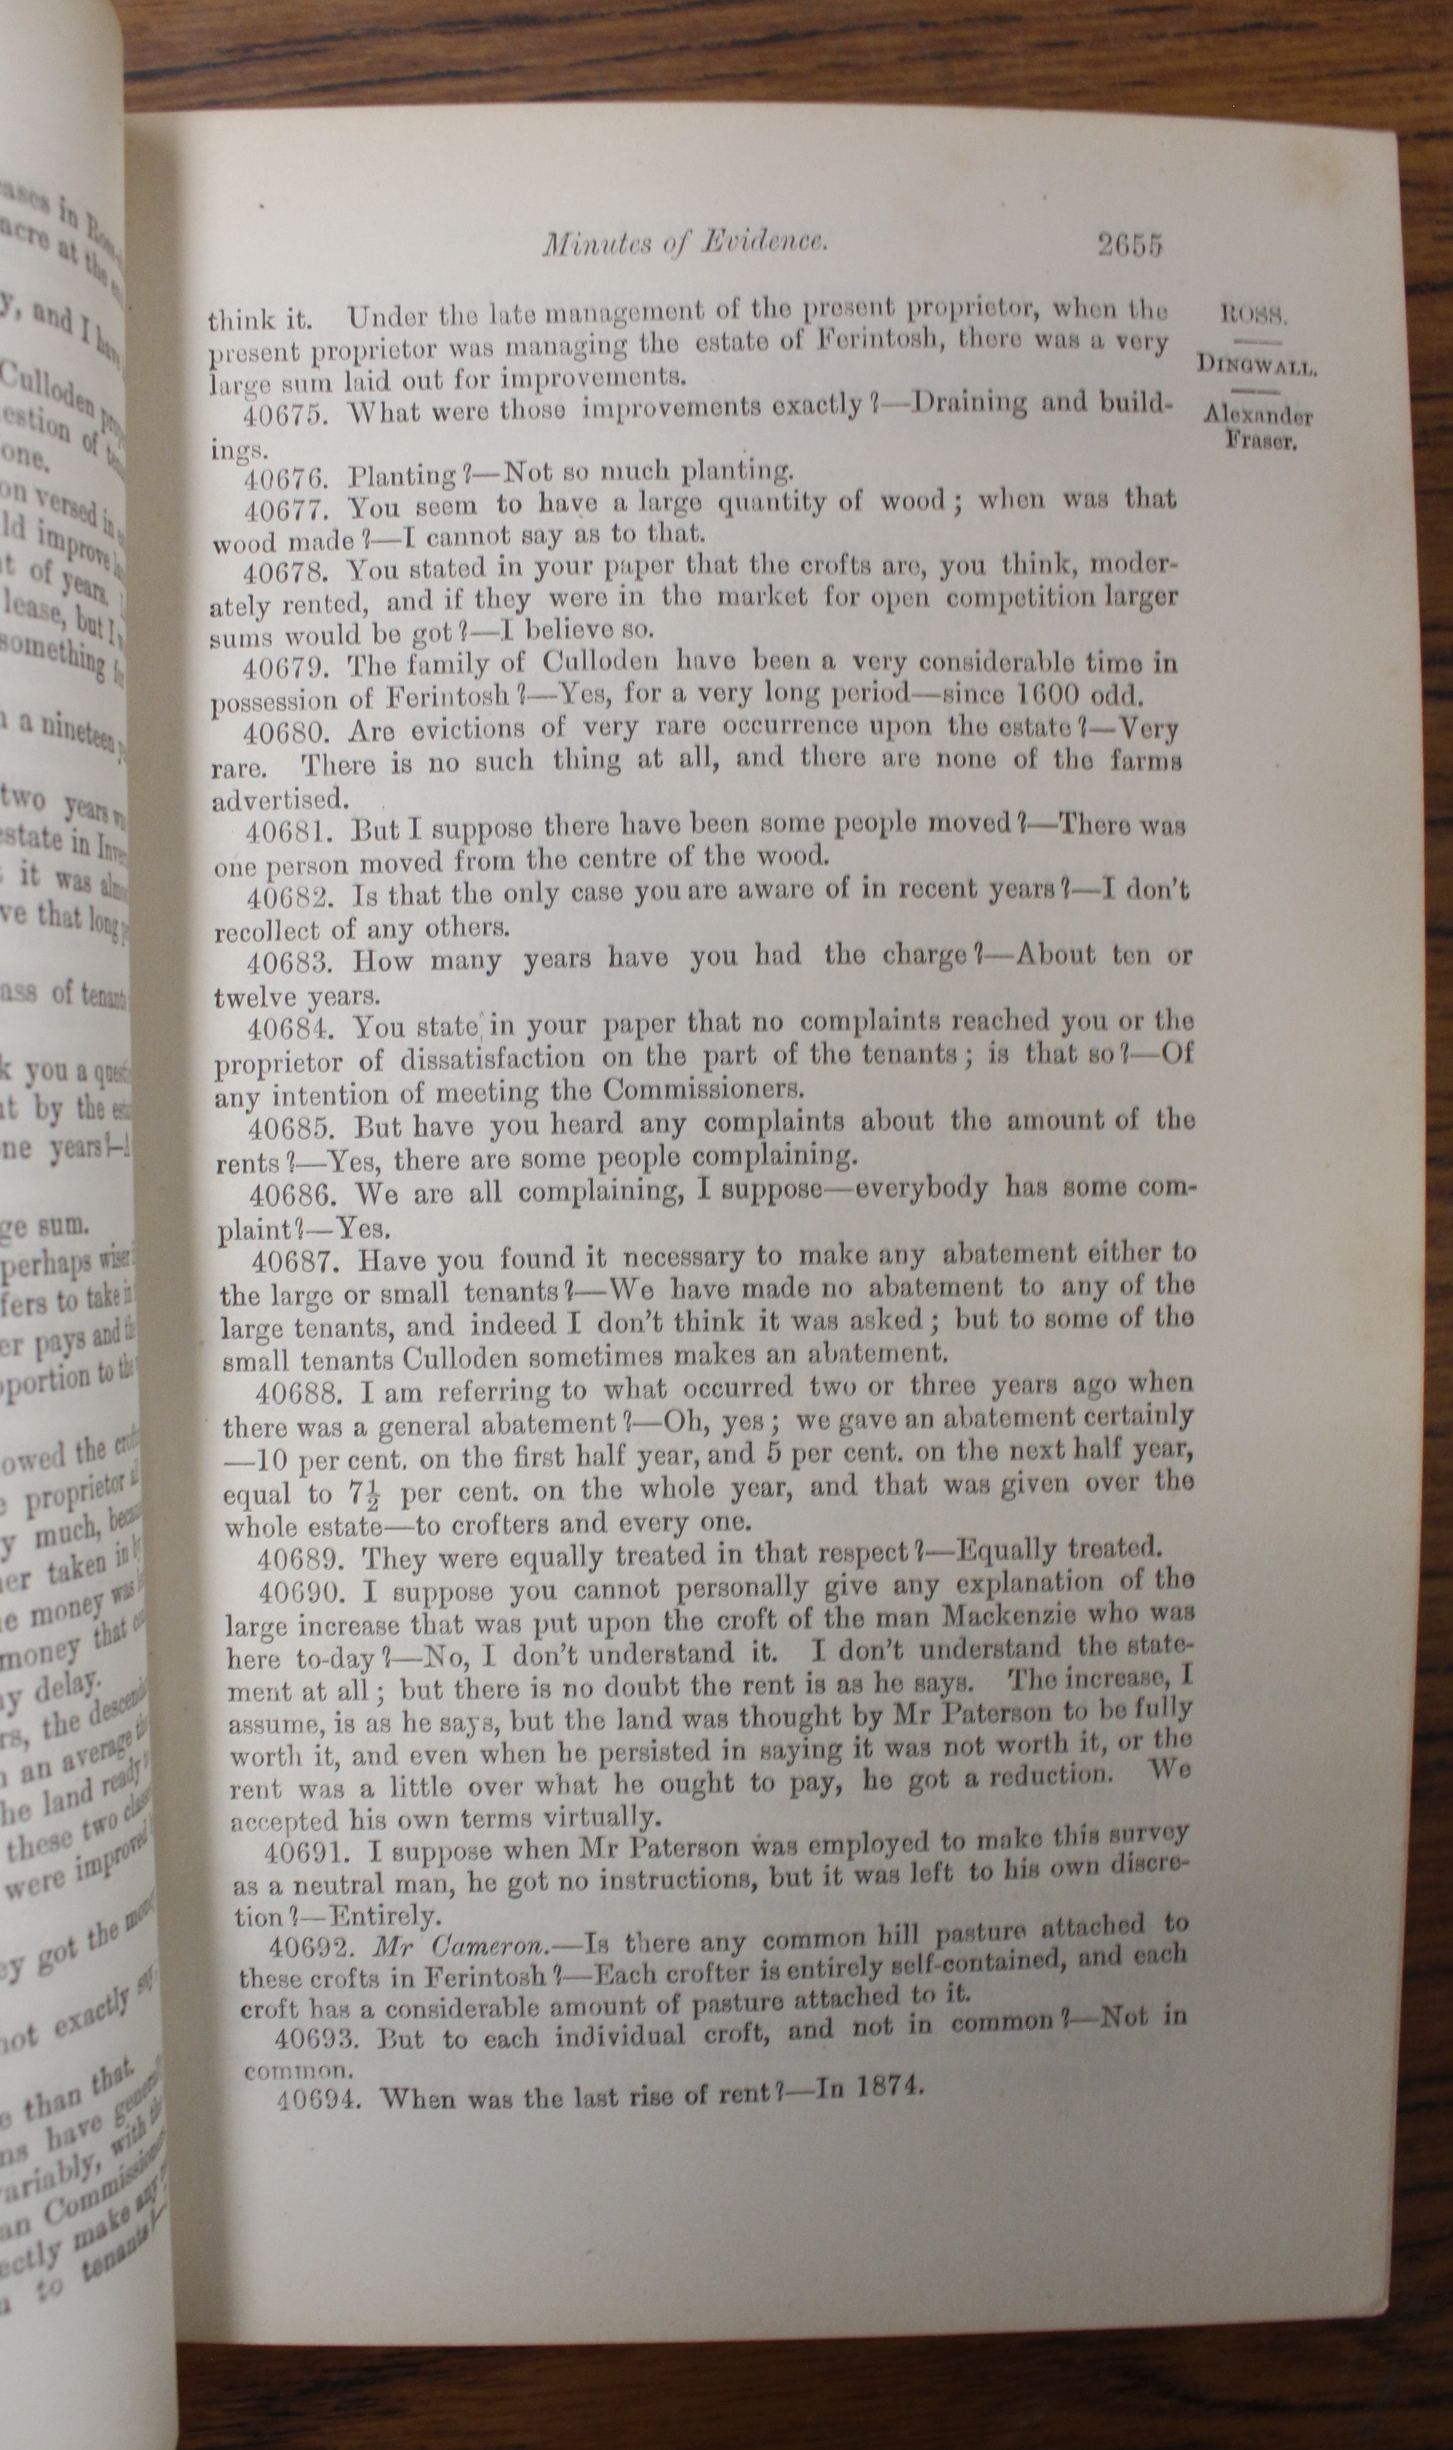 CROFTERS COMMISSION.Report of Her Majesty's Commissioners of Inquiry. 5 vols. incl. Evidential - Image 9 of 9